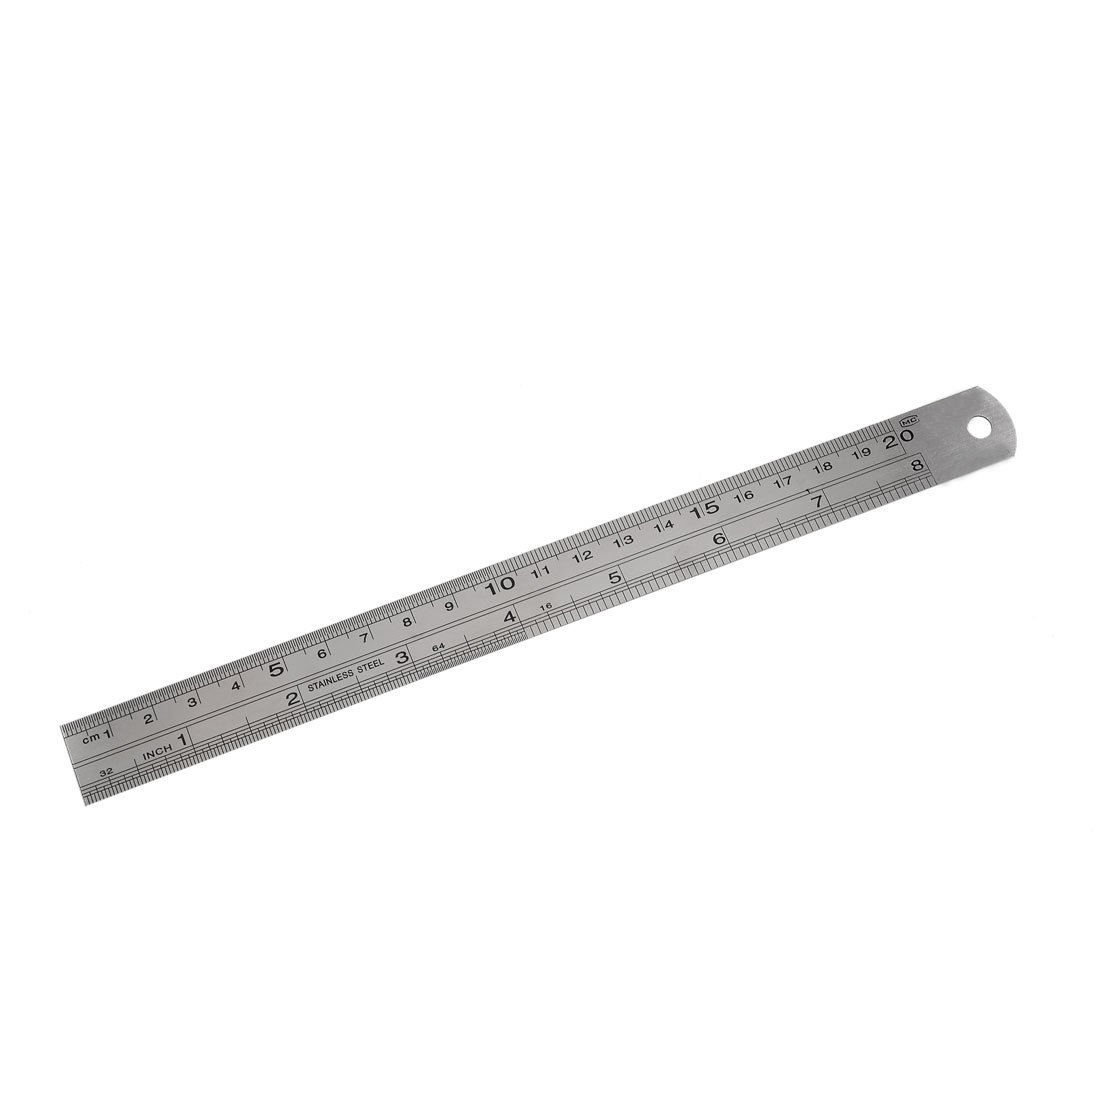 Perfect-Stainless Steel 20cm 8 Inch Metric Straight Ruler Measuring Tool